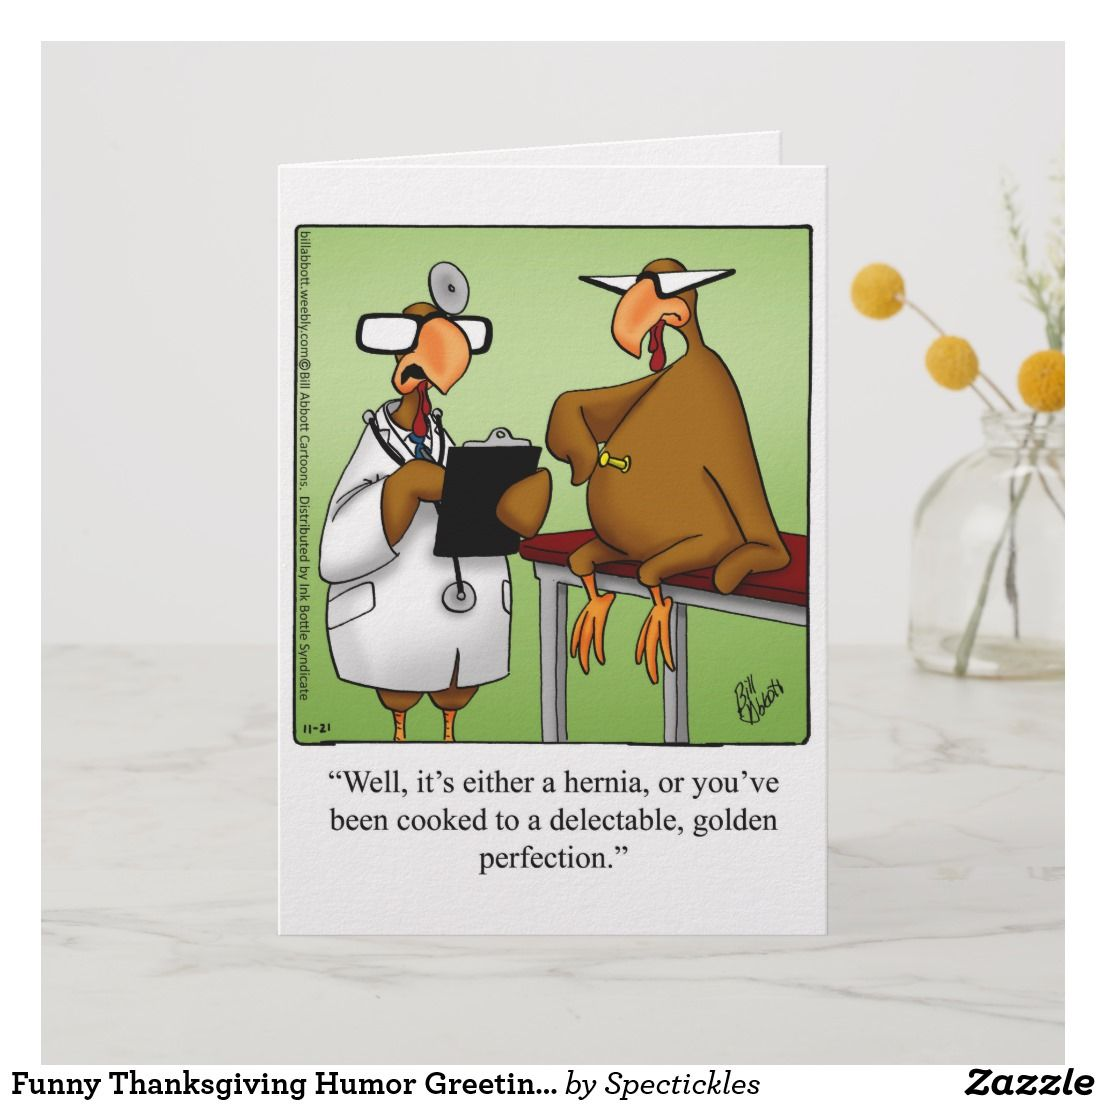 Thanksgiving Humorous greetings pictures foto